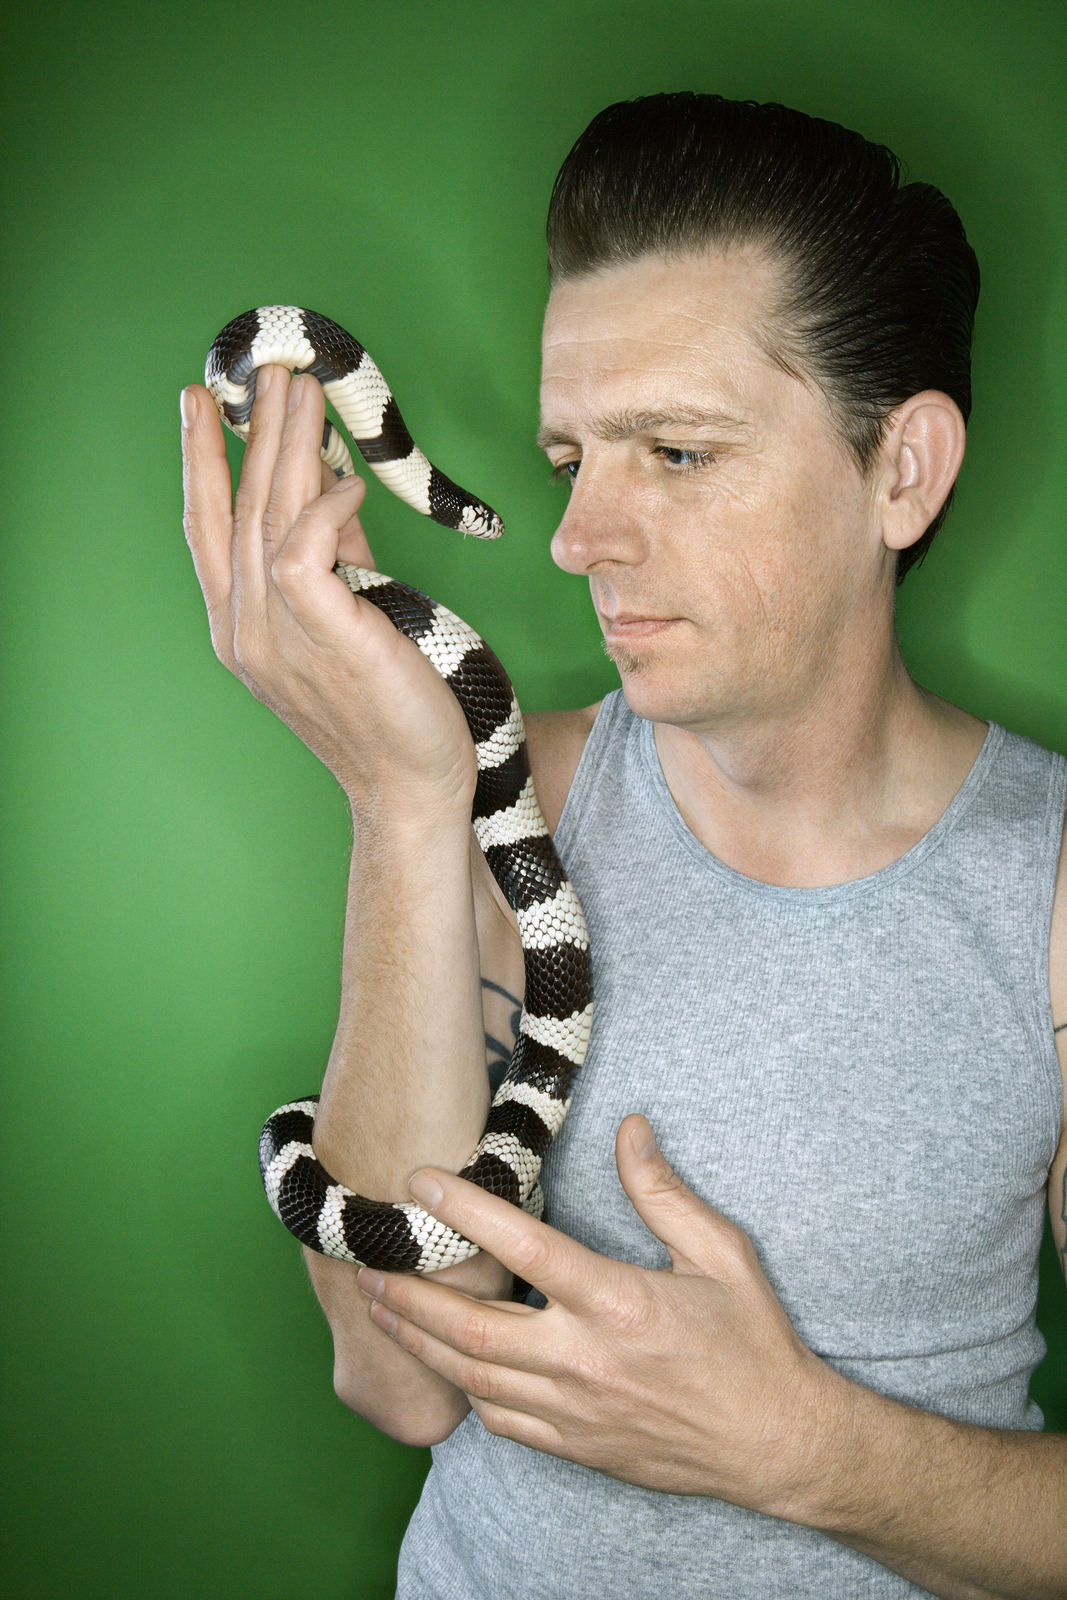 A man lovingly holds up the pet snake he is unable to store in a storage unit